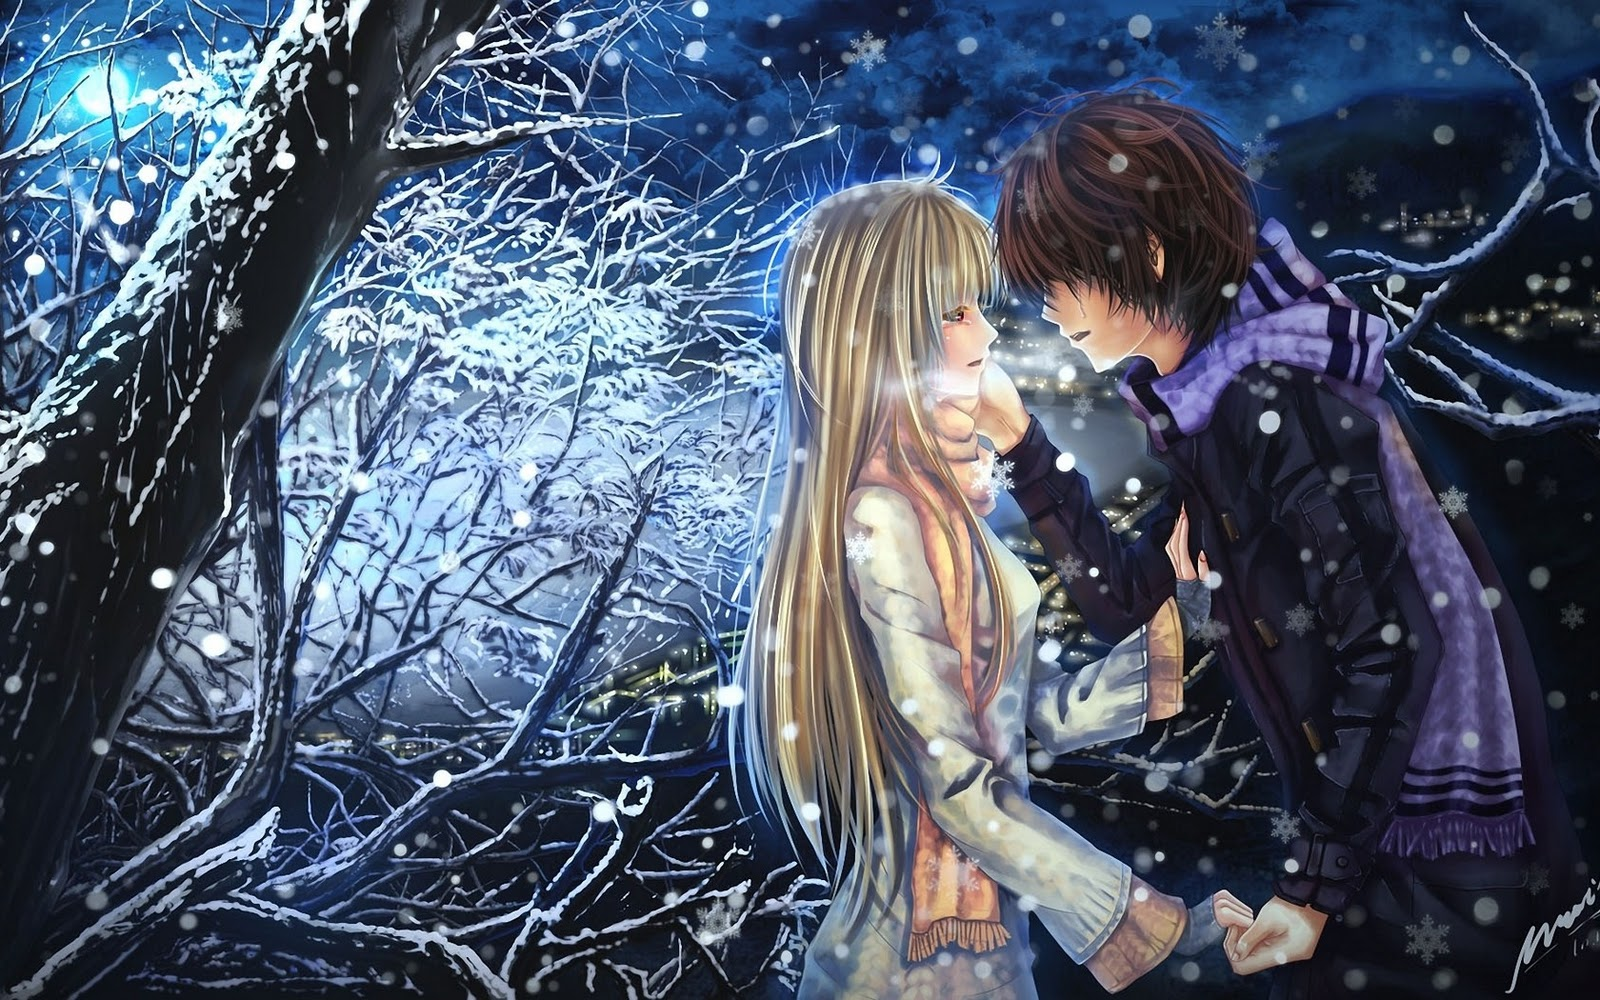 Love couple Wallpaper Hd cartoon : A2Z Wallpapers: Anime couples In Love Wallpapers